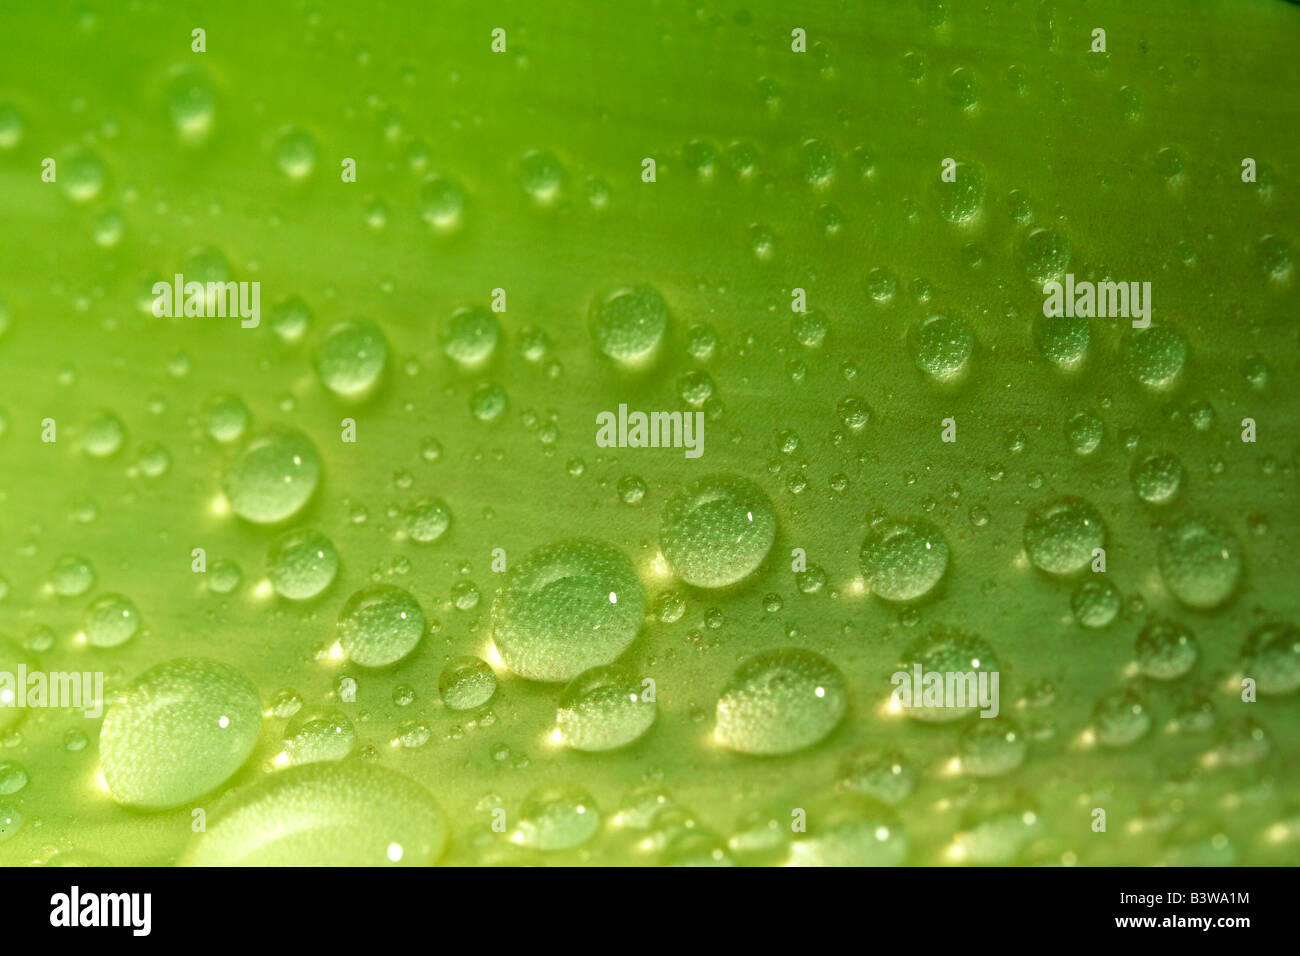 Water droplets on a leaf - Stock Image